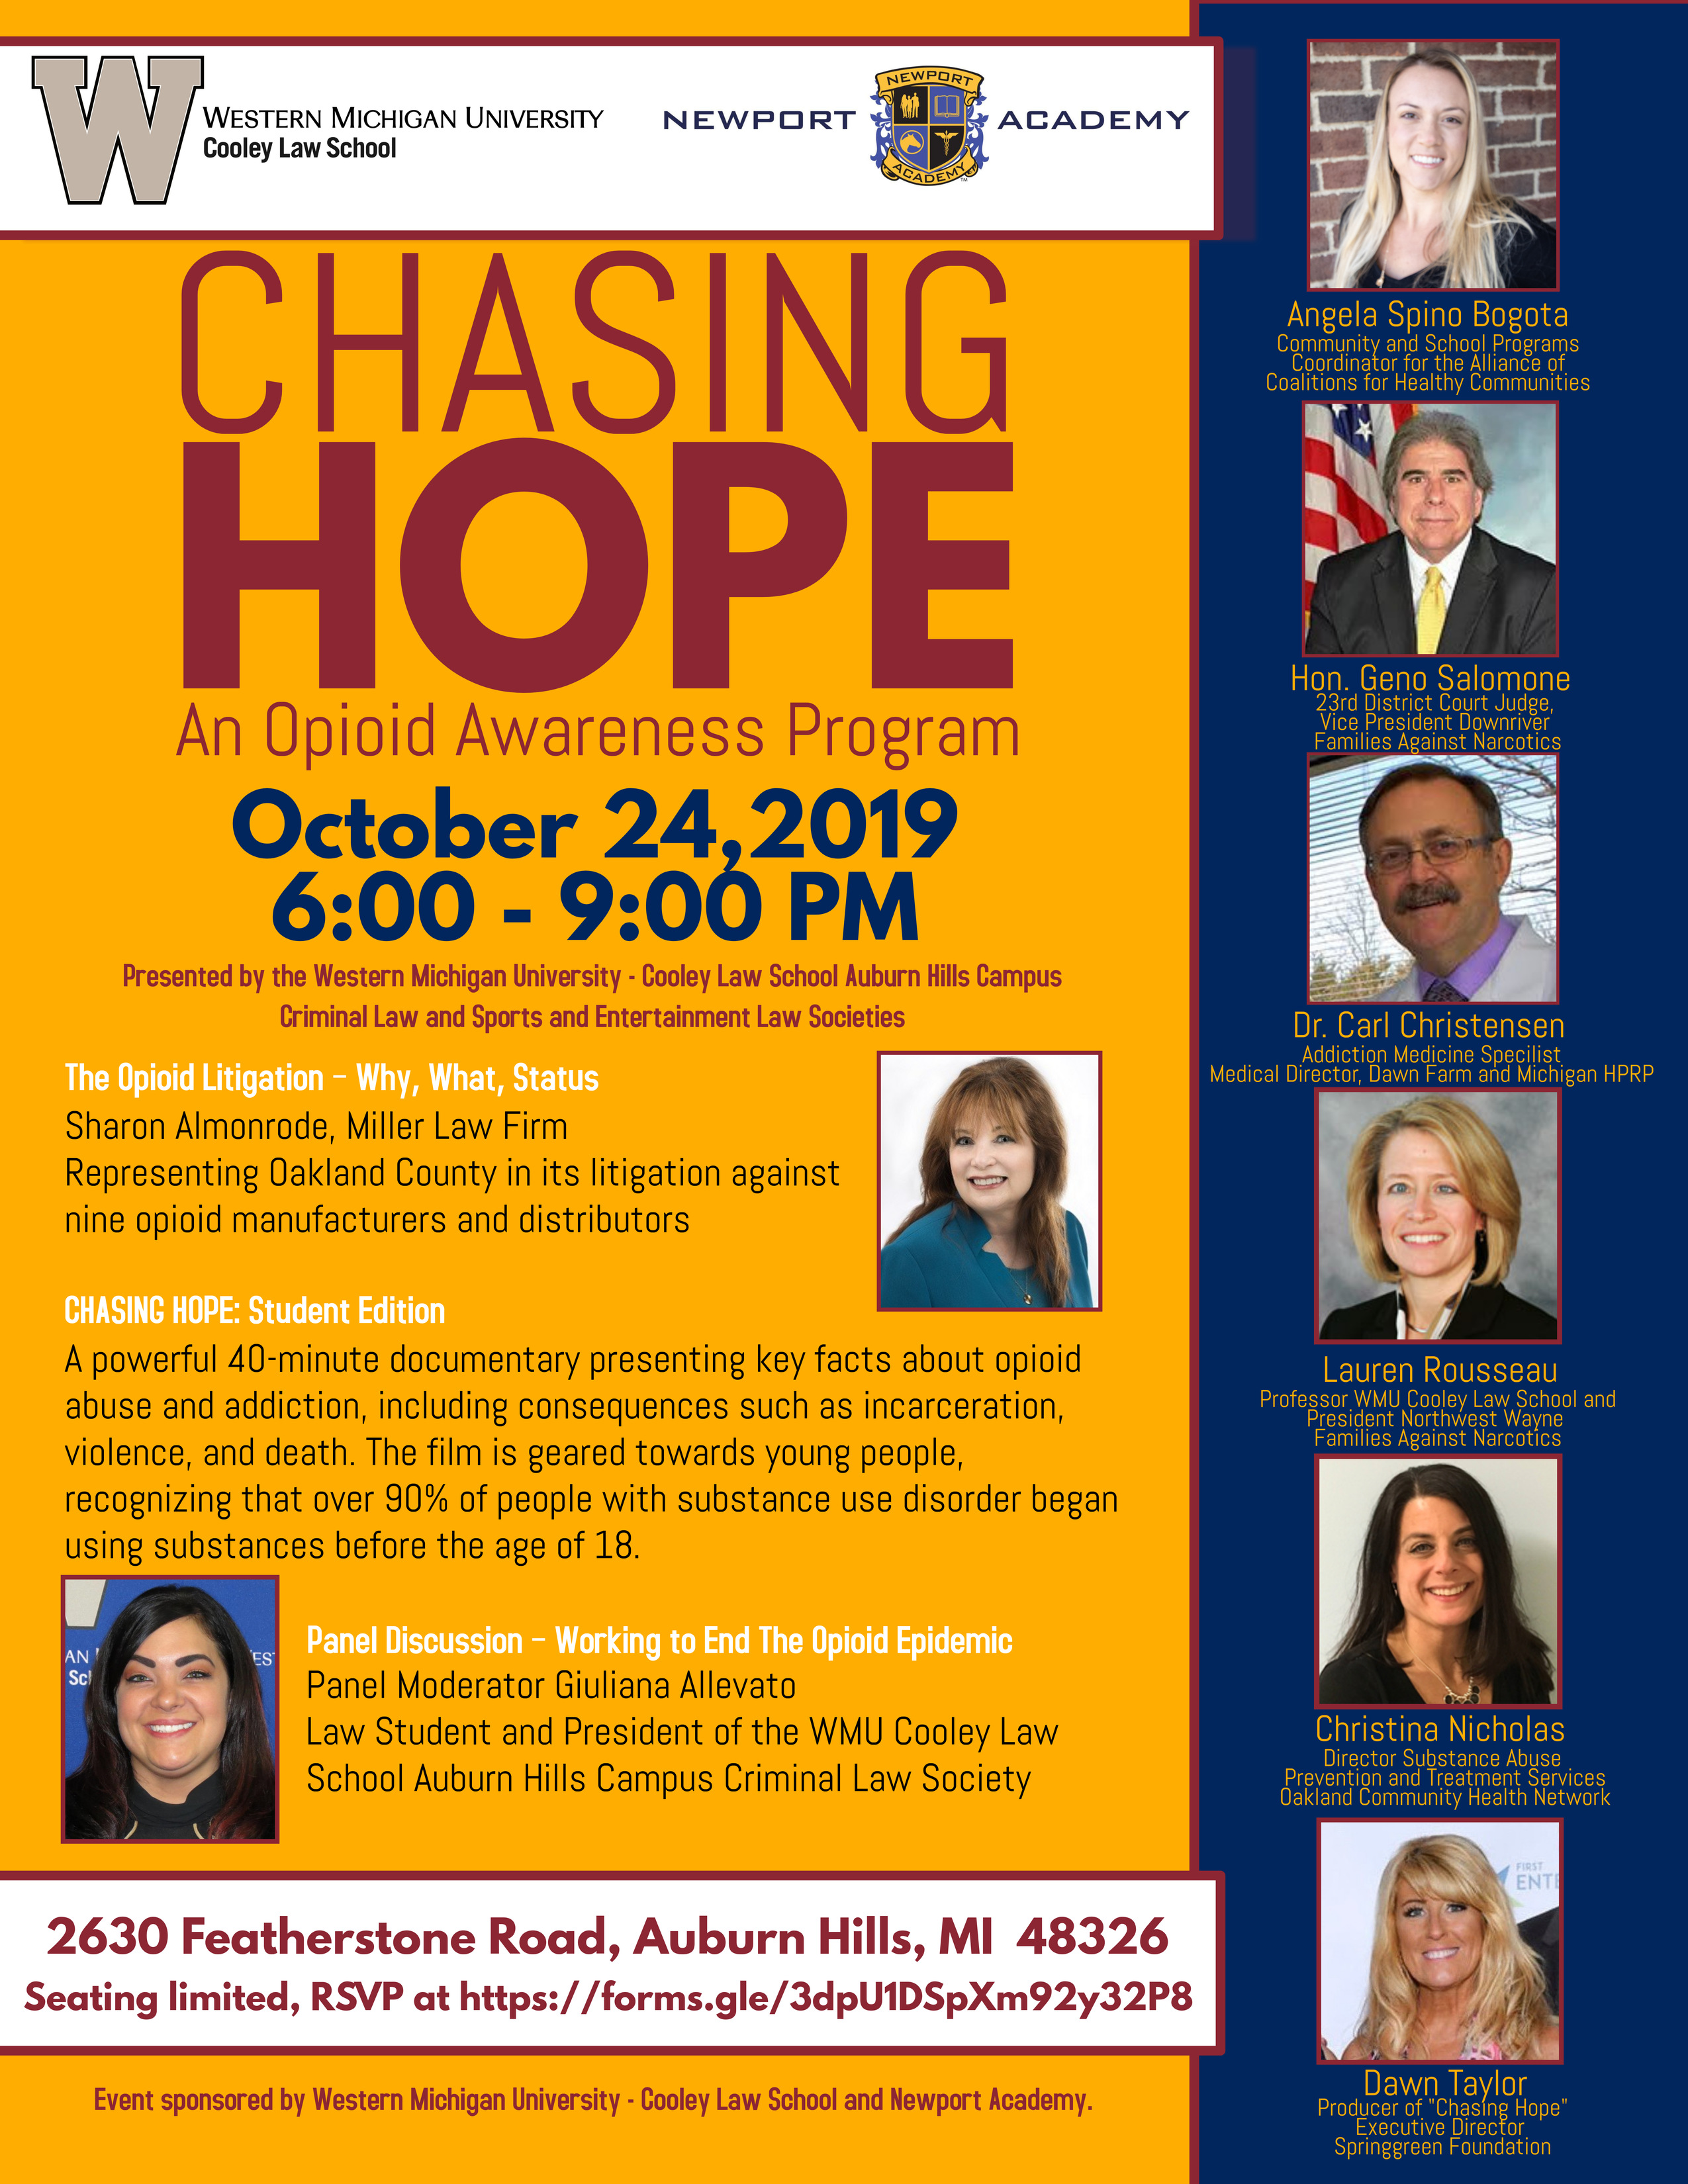 Chasing Hope: An Opioid Awareness Program